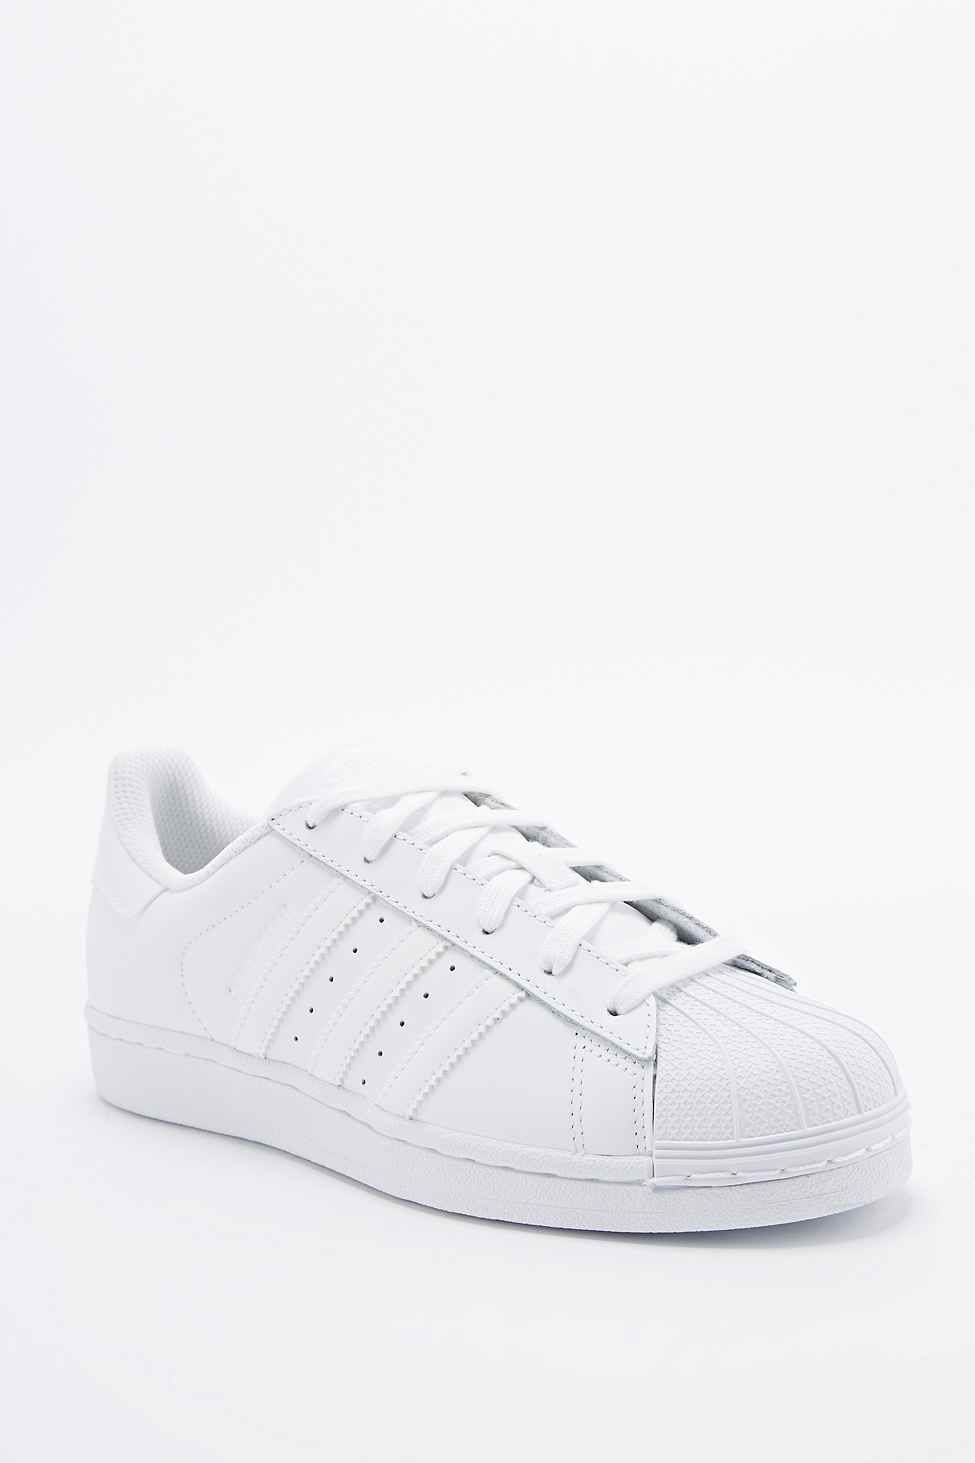 brand new 80d54 be8c7 Adidas Superstar 80s Trainers in All White